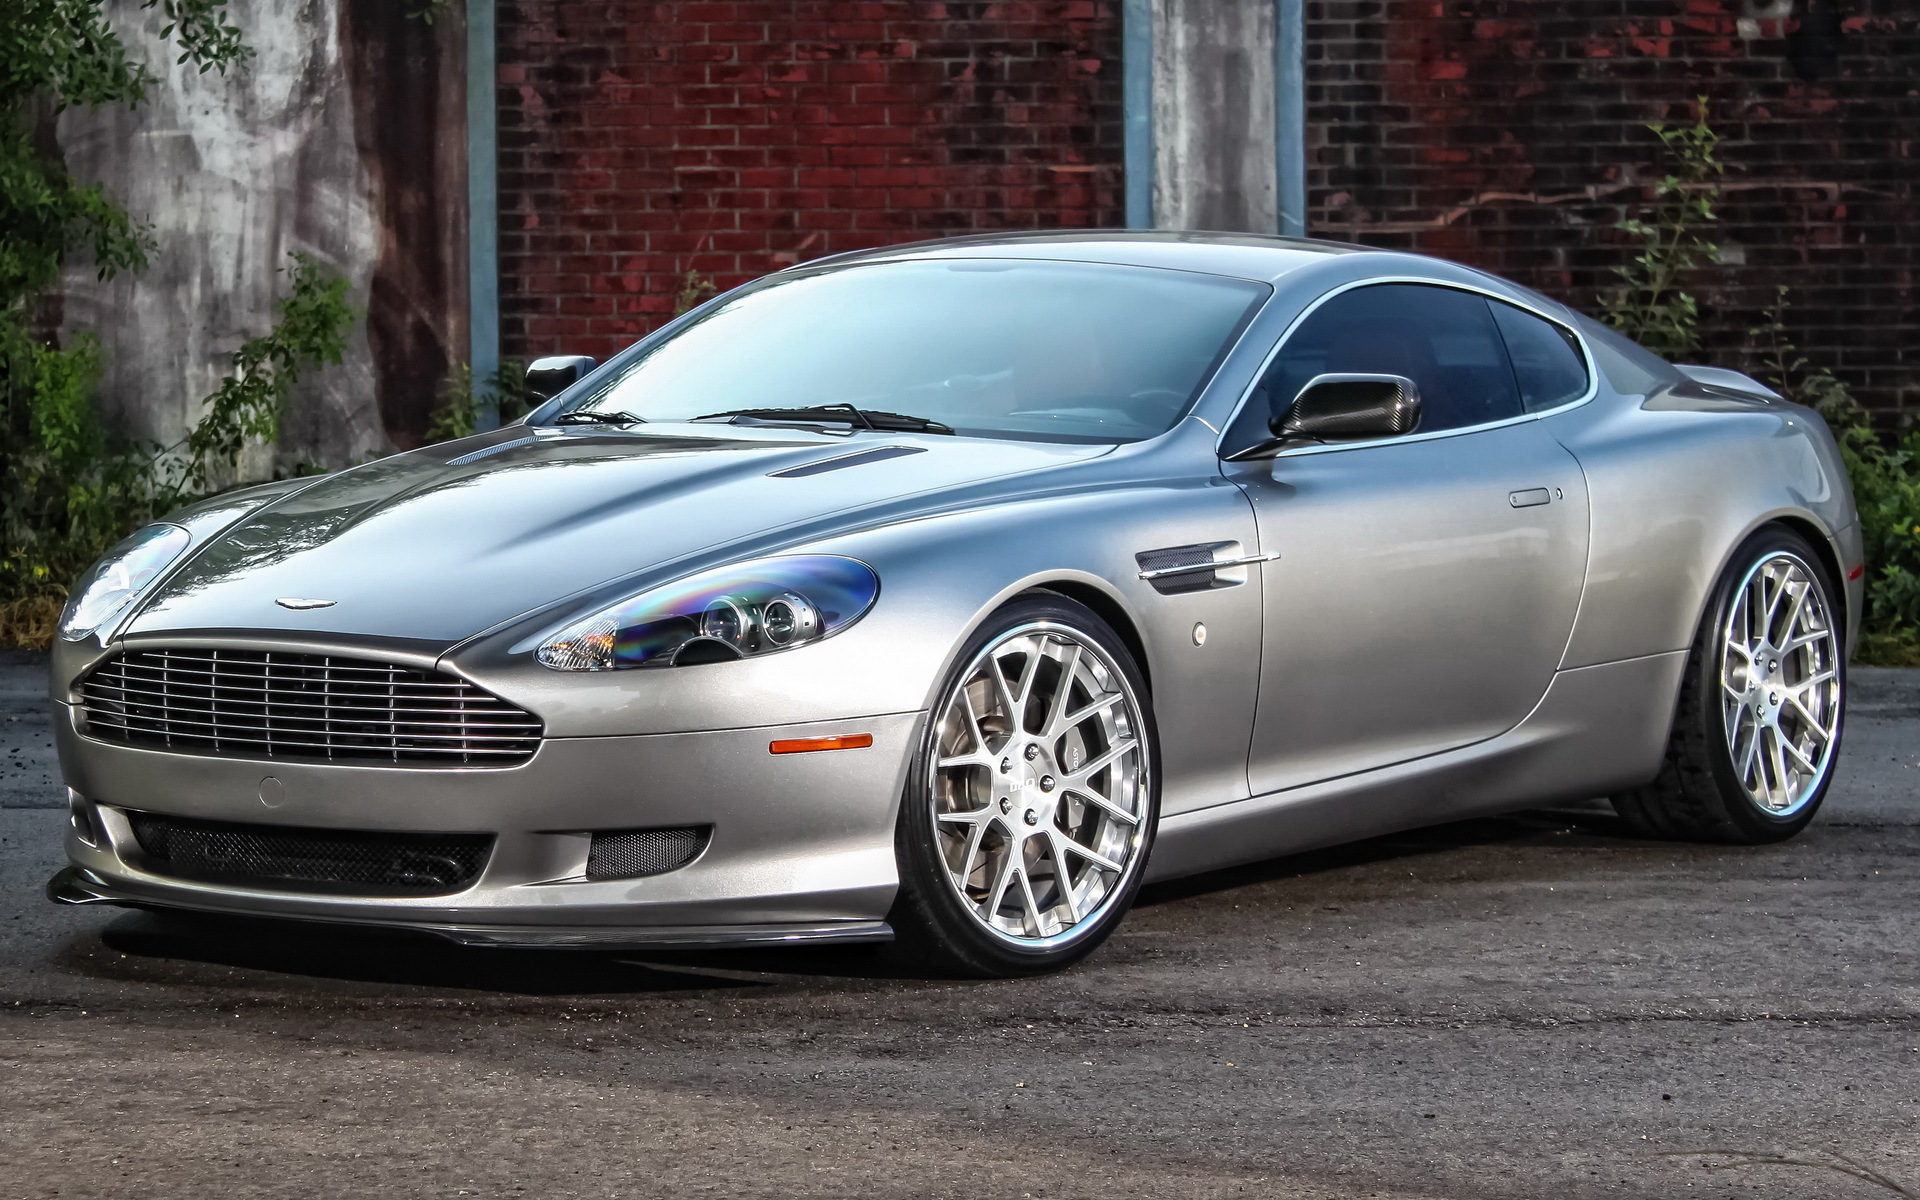 silver aston martin db9 wallpapers silver aston martin db9 stock photos. Black Bedroom Furniture Sets. Home Design Ideas